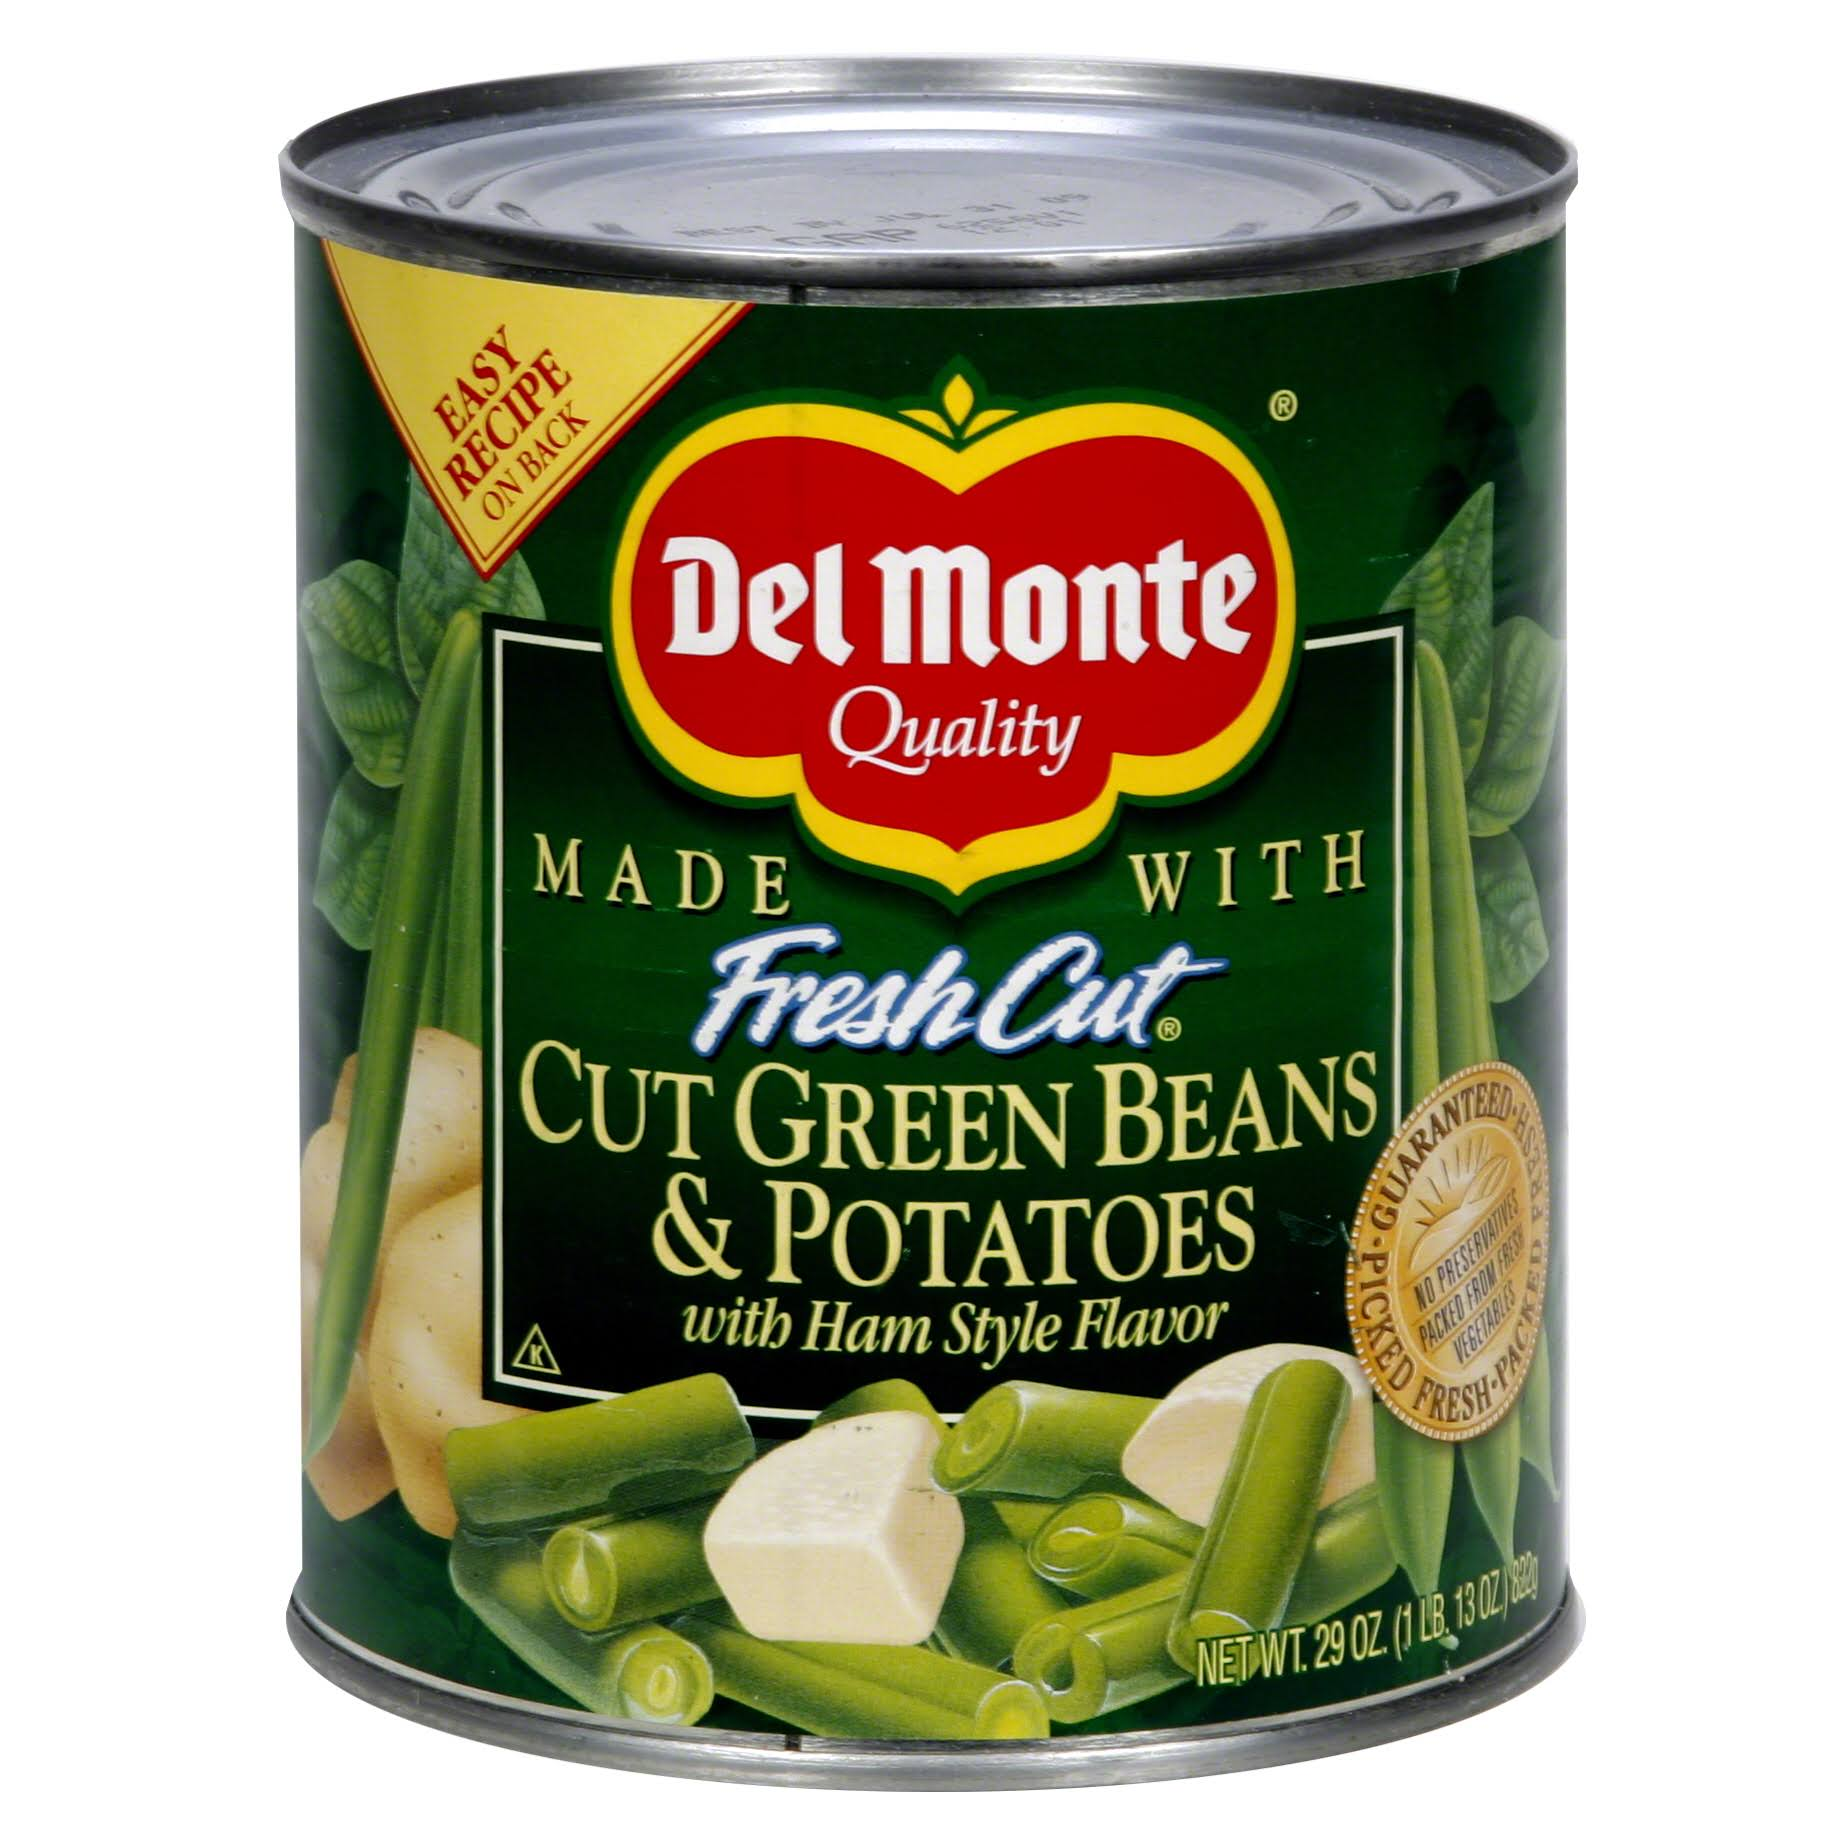 Del Monte Blue Lake Cut Green Beans and Potatoes - with Ham Style Flavor, 29oz